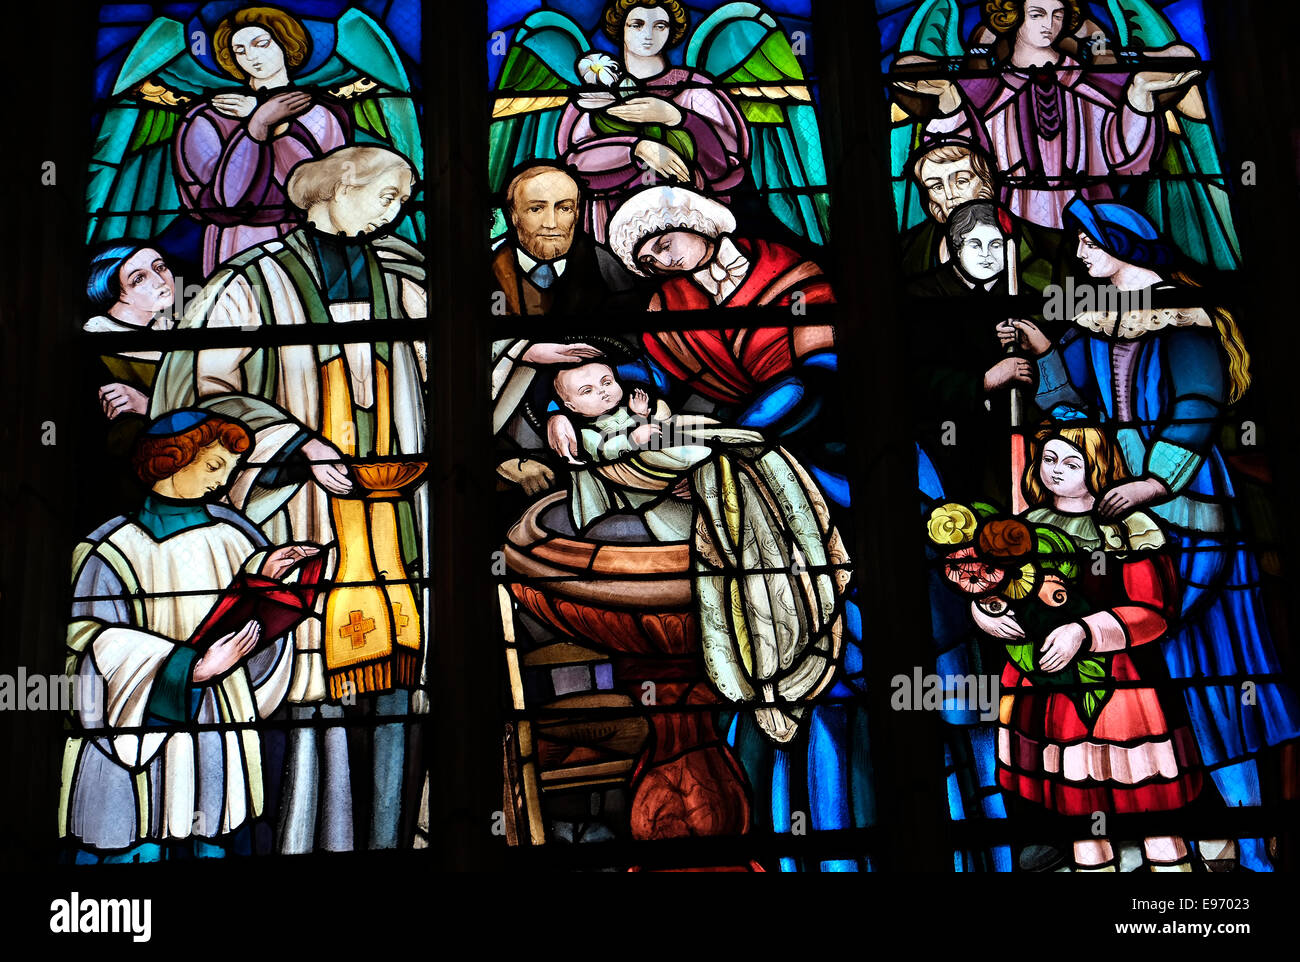 stained glass window depicting colourful baptism scene - Stock Image